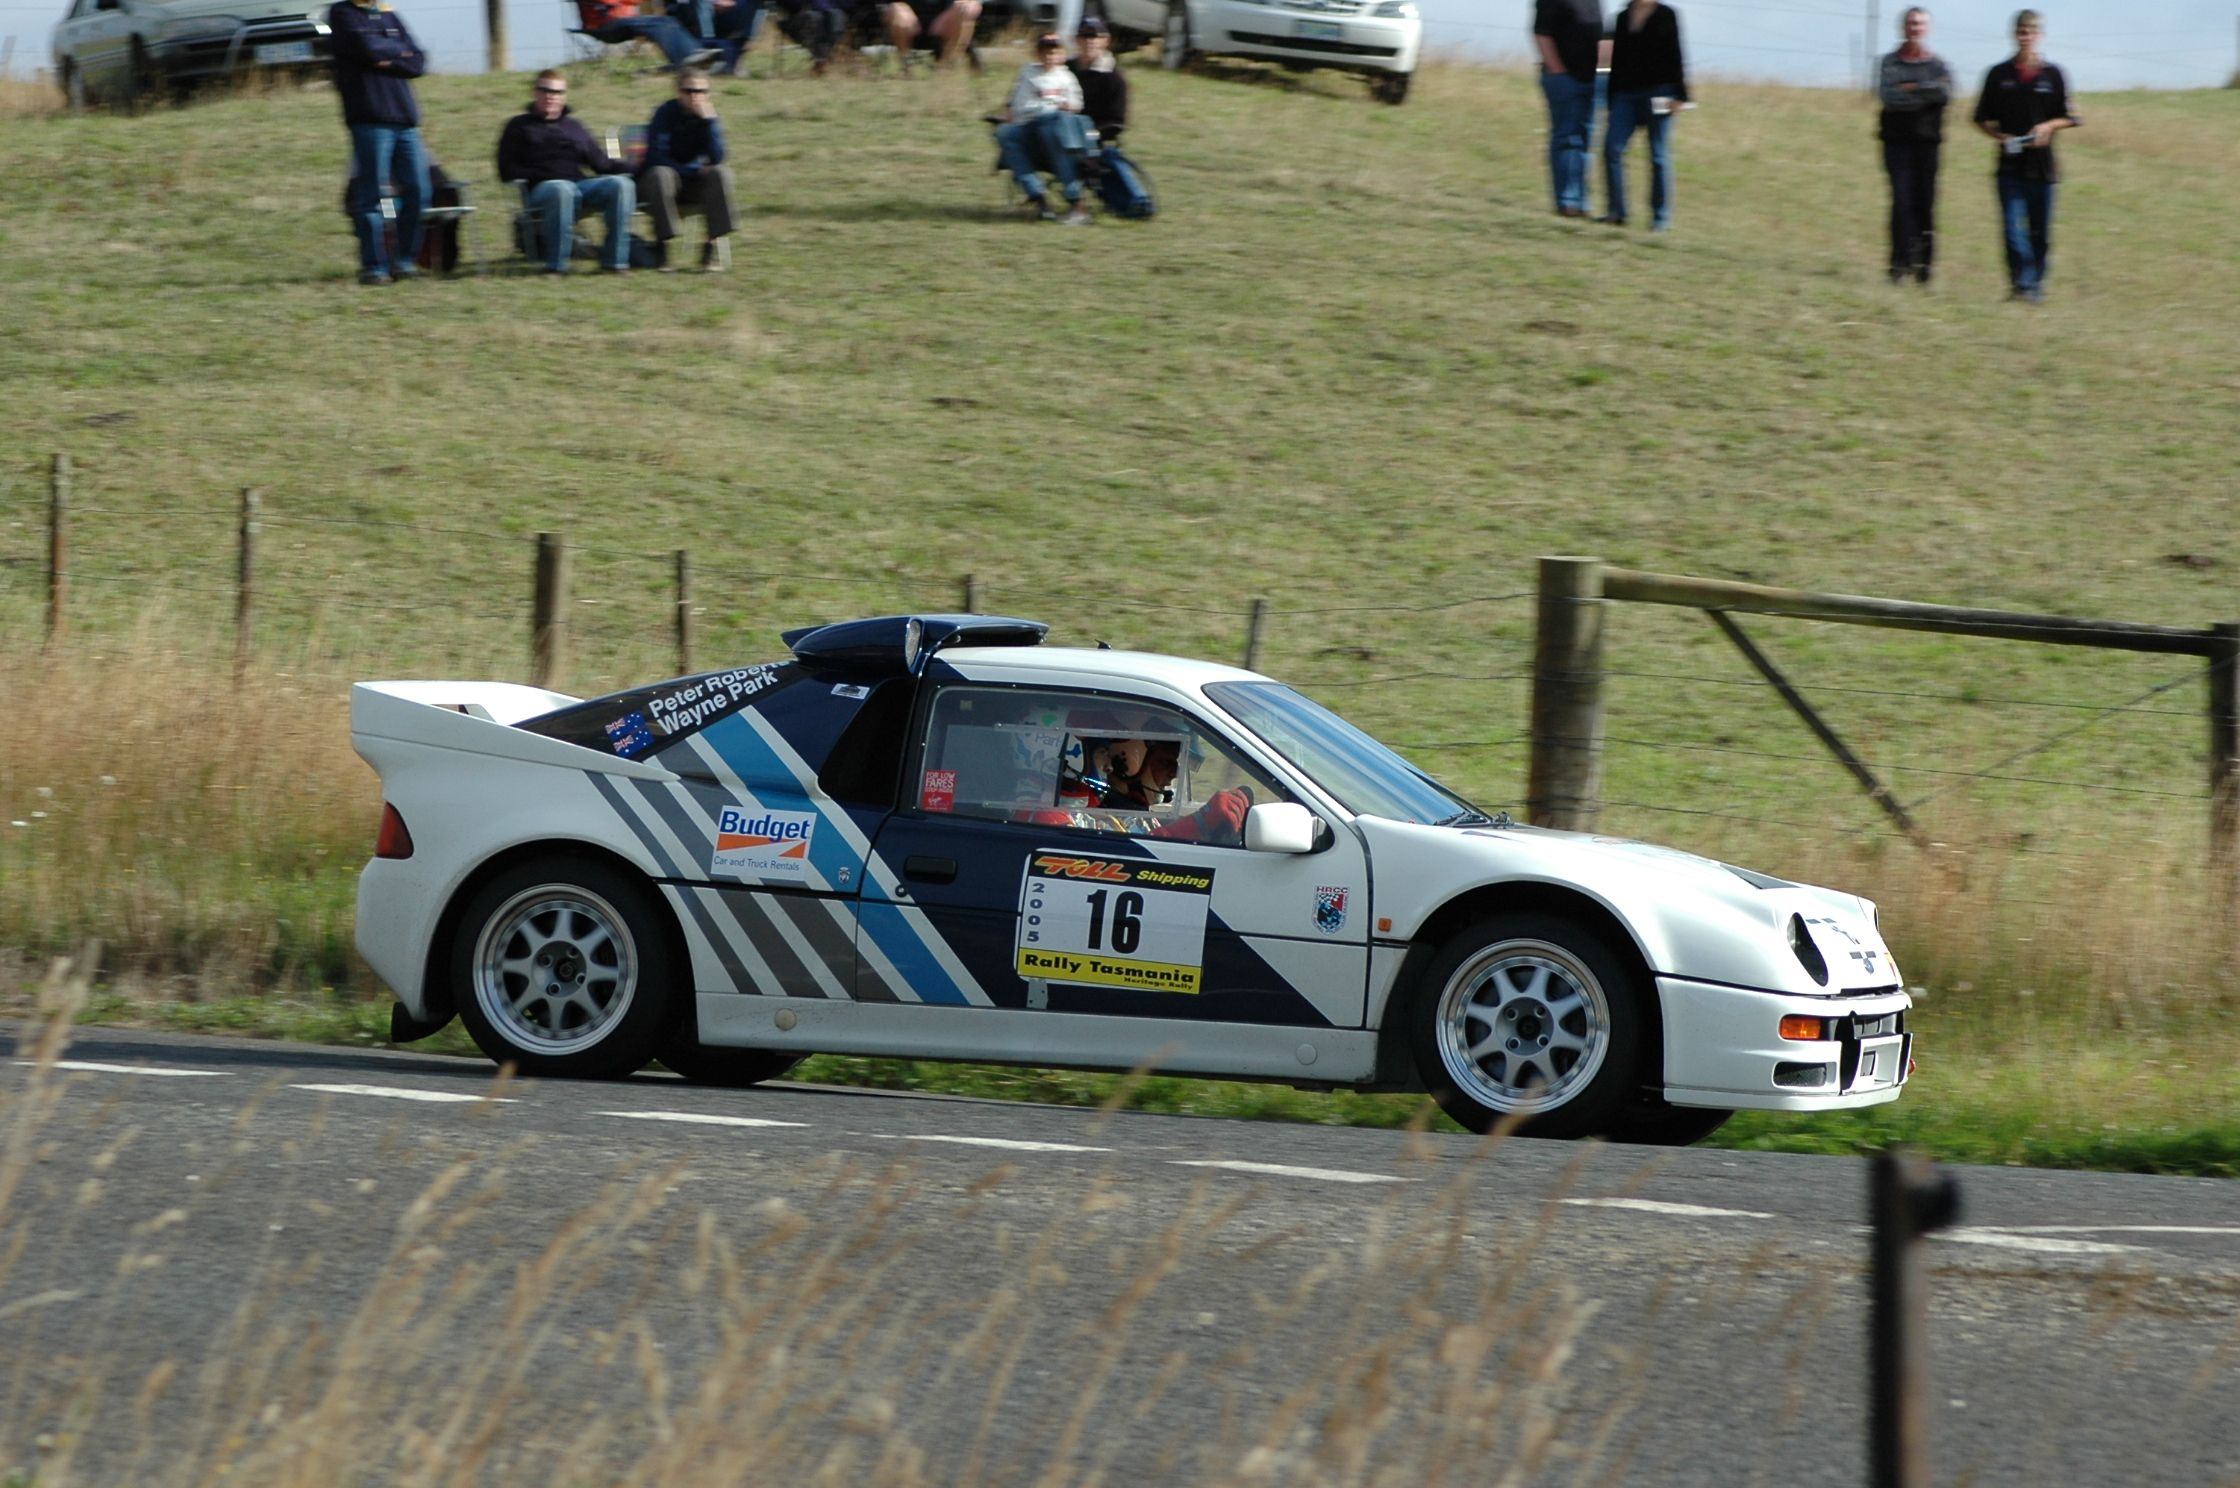 Ford Rs 200 It Would Be A Dream To Own One One Day Ford Rs Ford Sierra Ford